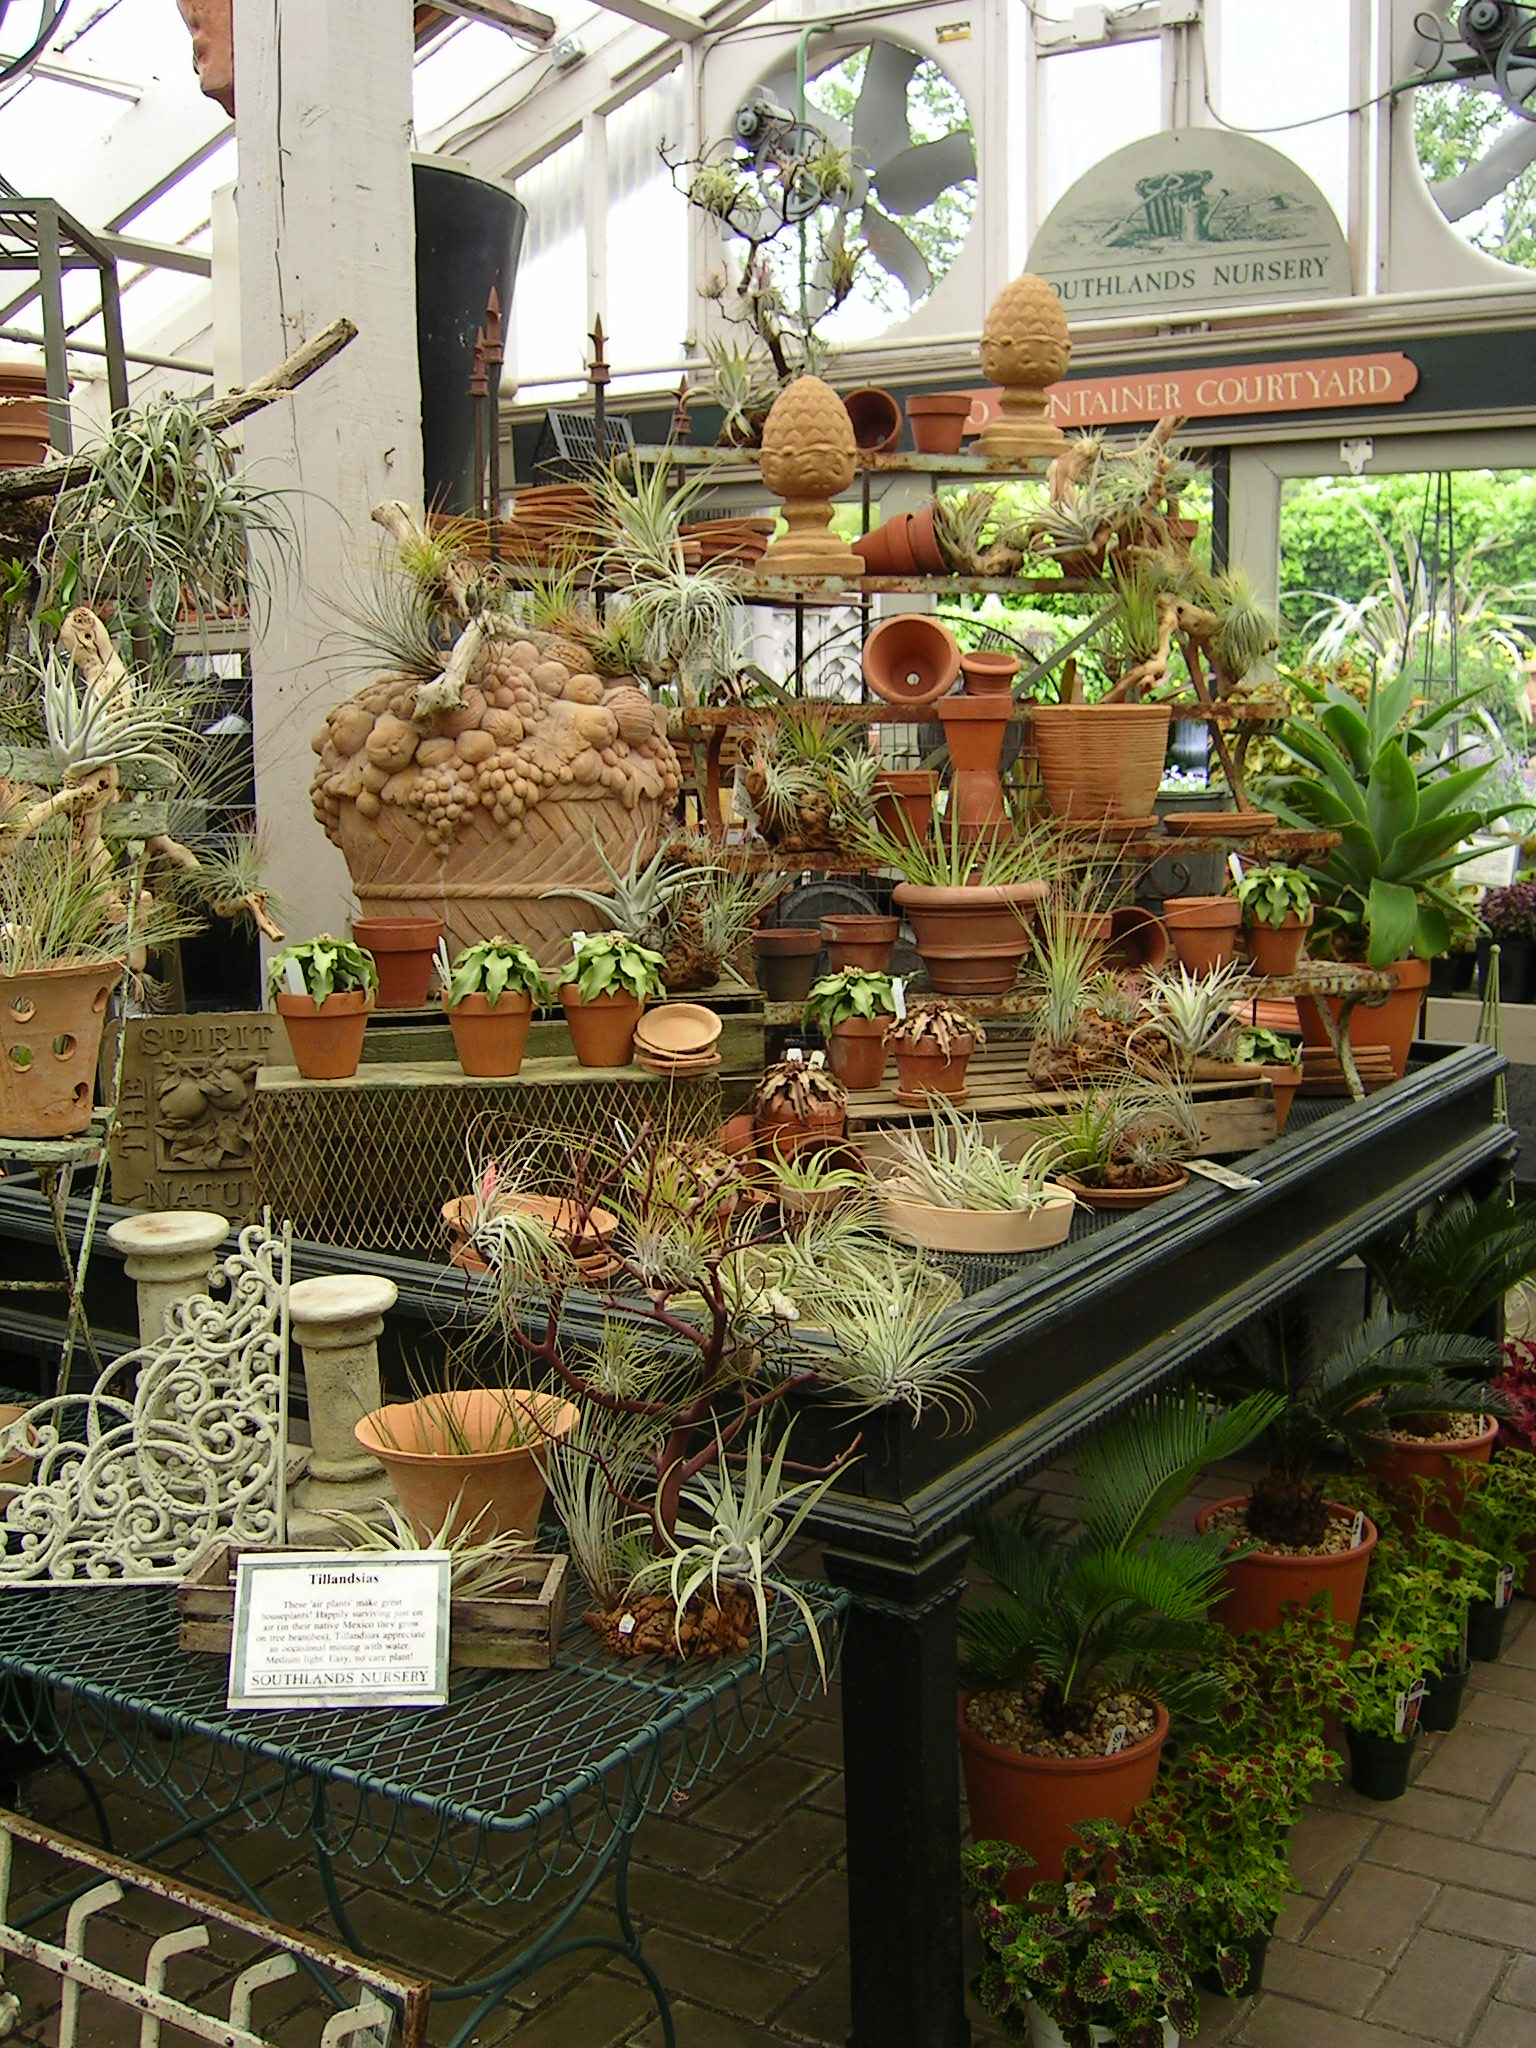 Southlands nursery vancouver hortus 2 there is life for Garden display ideas